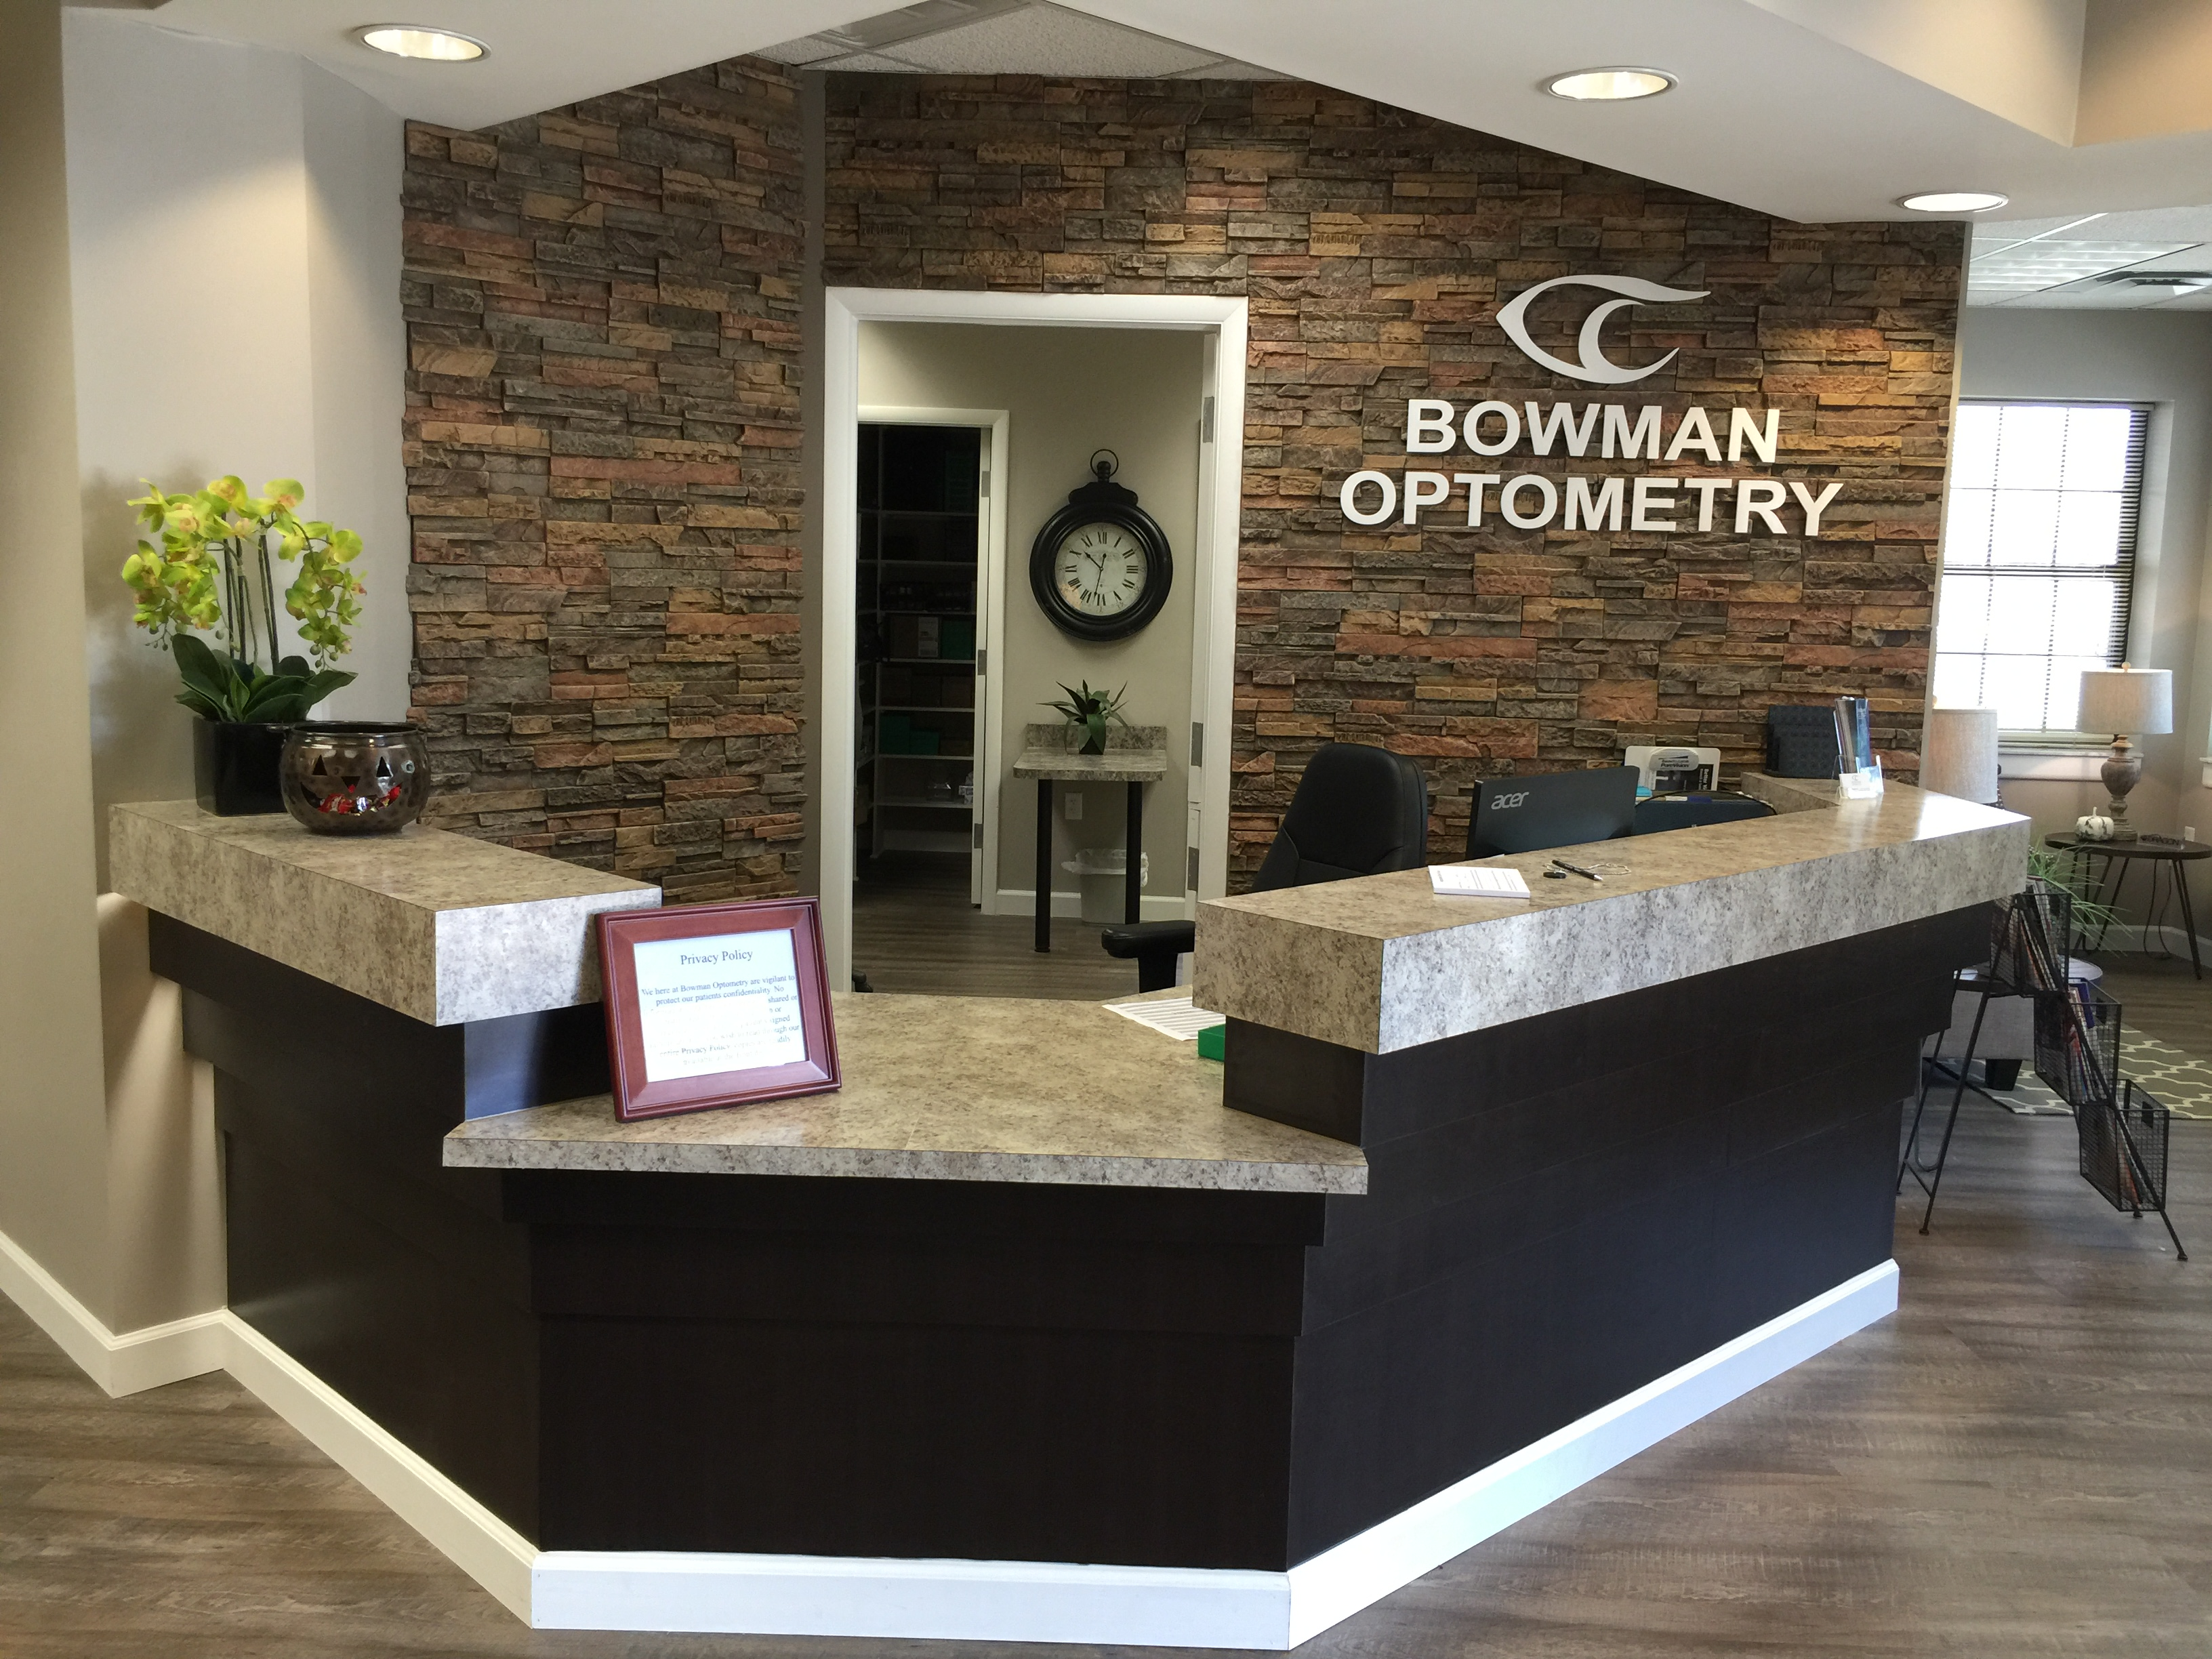 Bowman Optometry